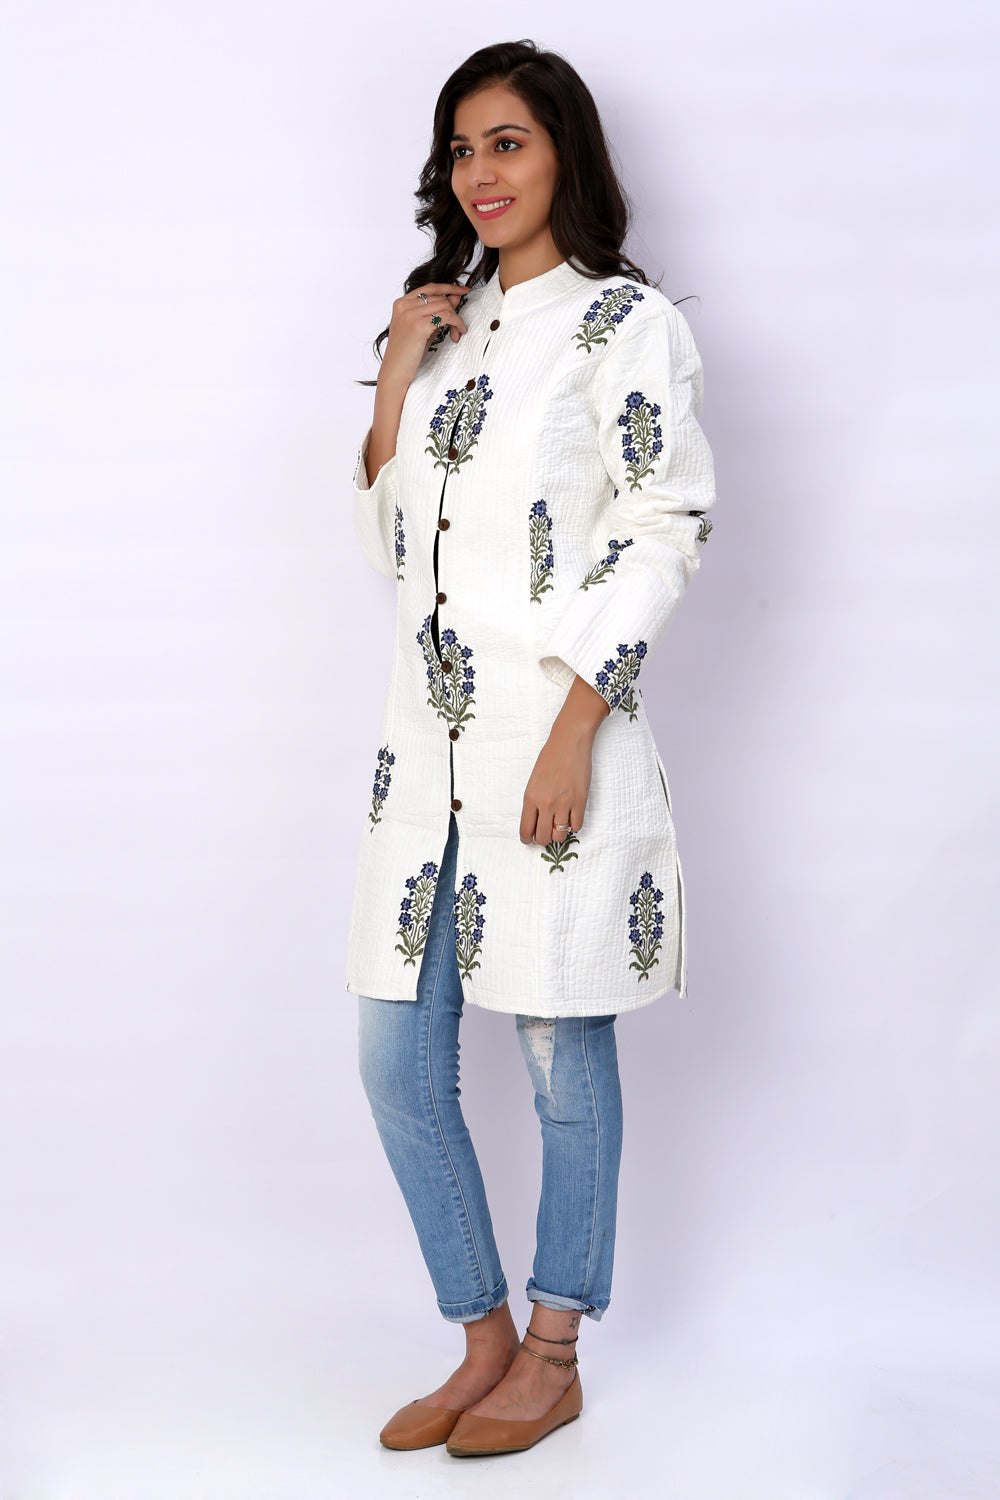 White Hand Block Printed Quilted Reversible Long Jacket - GleamBerry